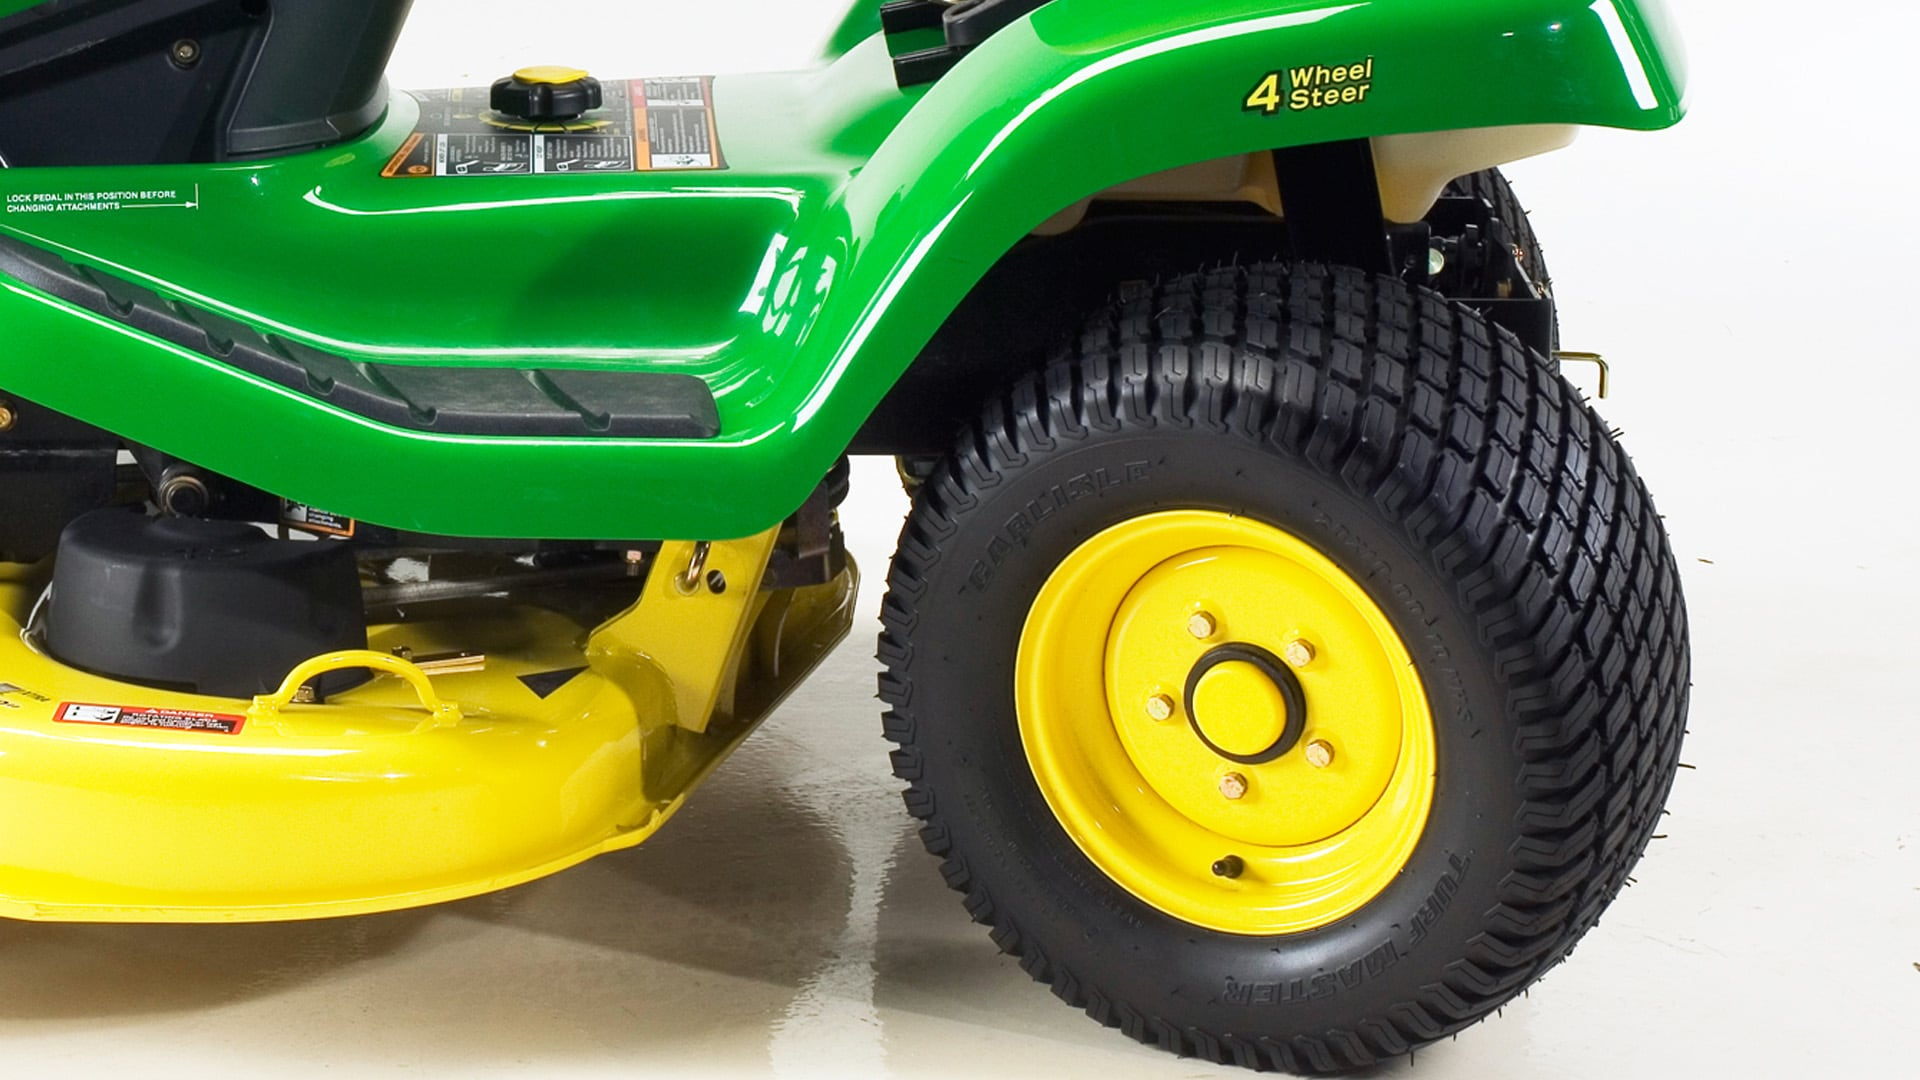 4 Wheel Steer Tractors : Lawn tractors select series john deere us